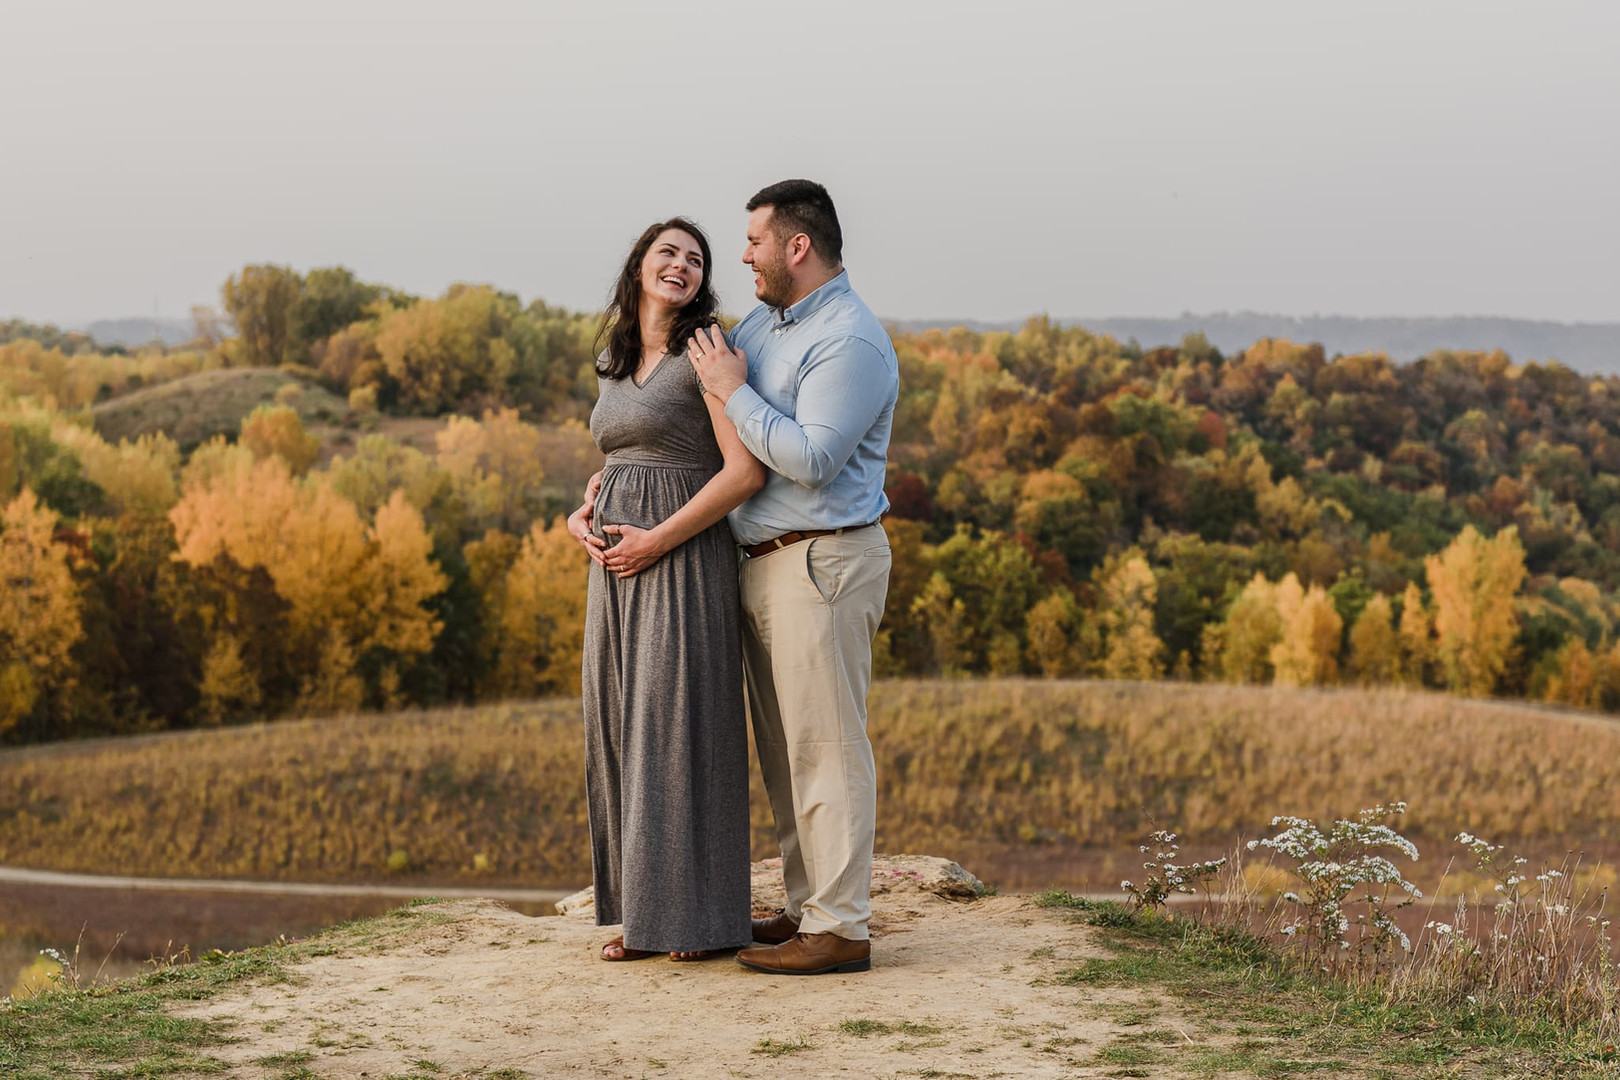 La Crosse, Wisconsin Maternity Photoshoot